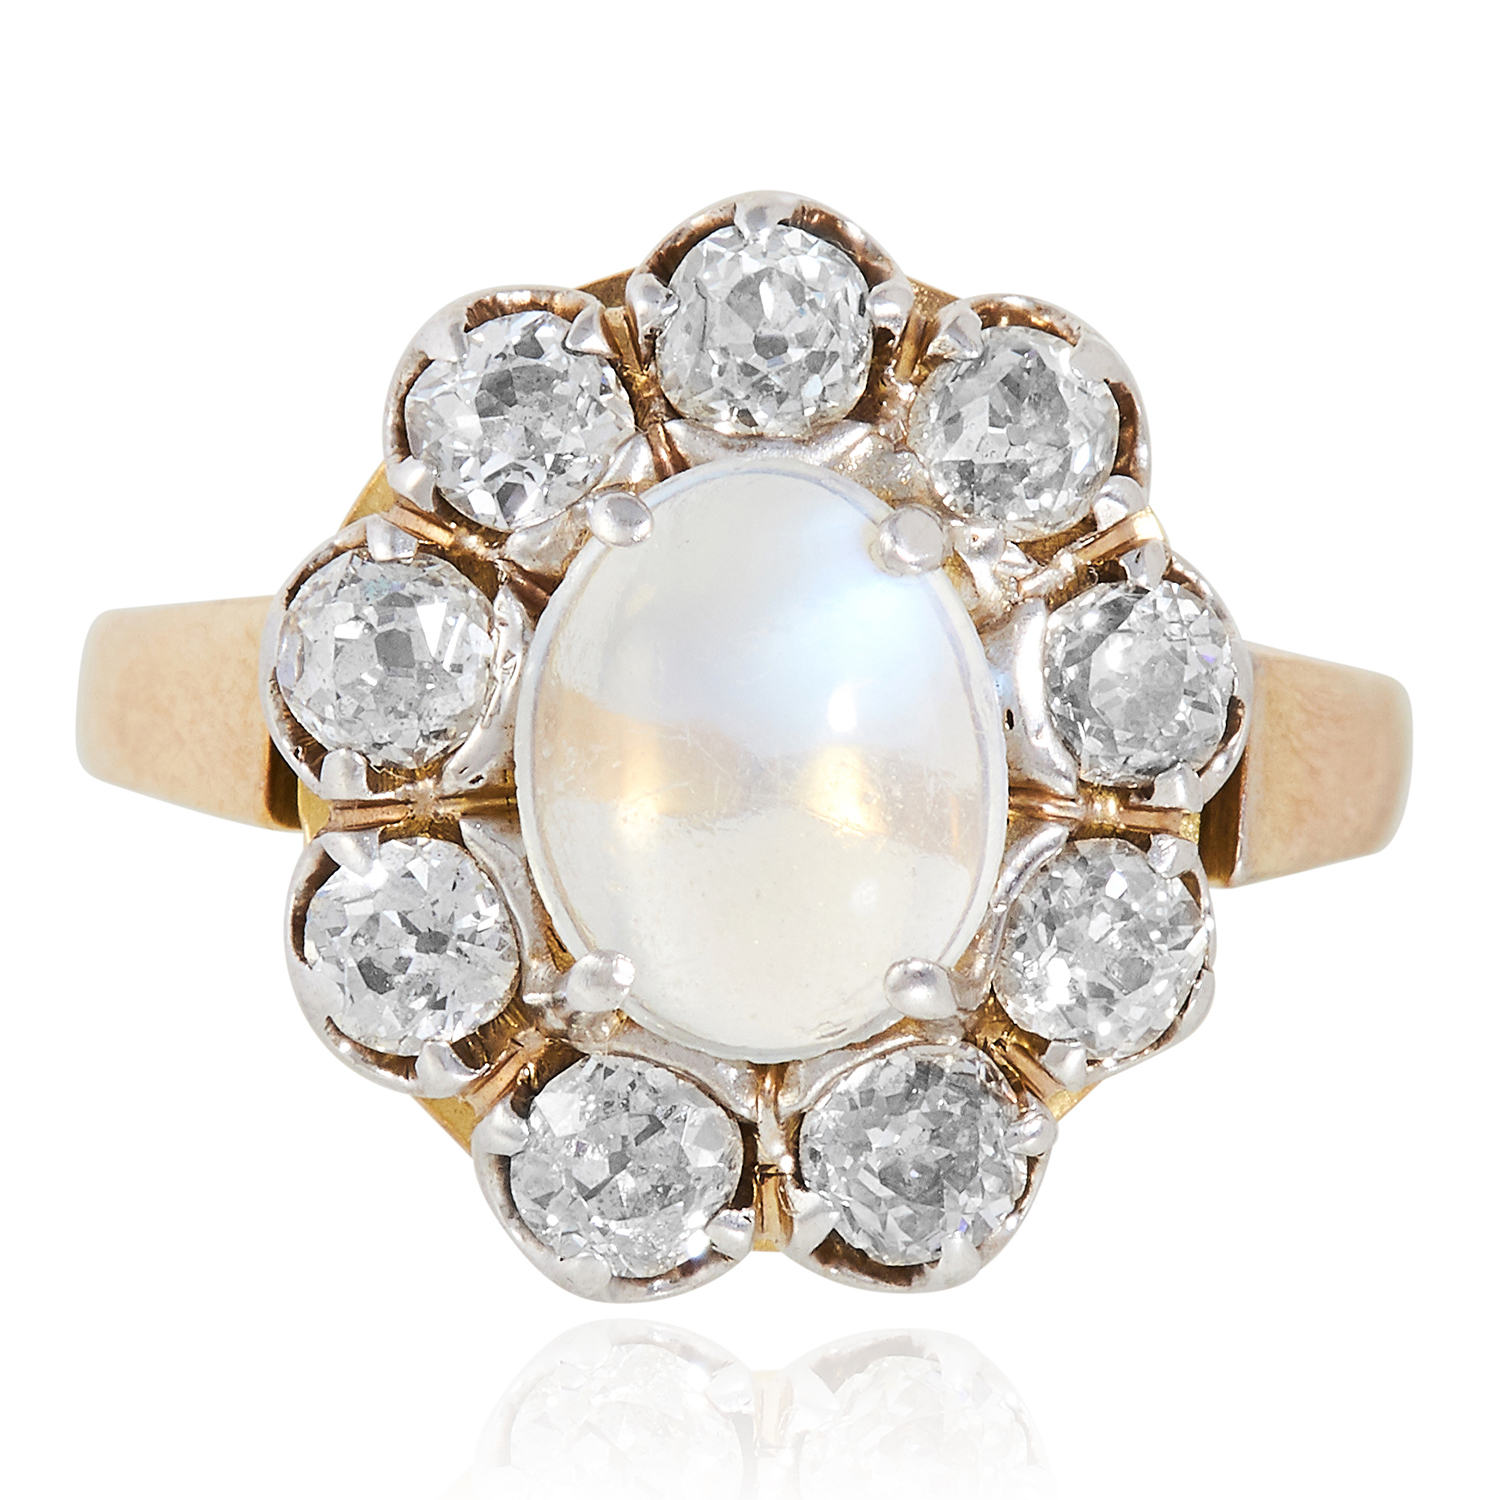 Los 25 - A MOONSTONE AND DIAMOND CLUSTER RING in yellow gold, set with a cabochon moonstone in a cluster of